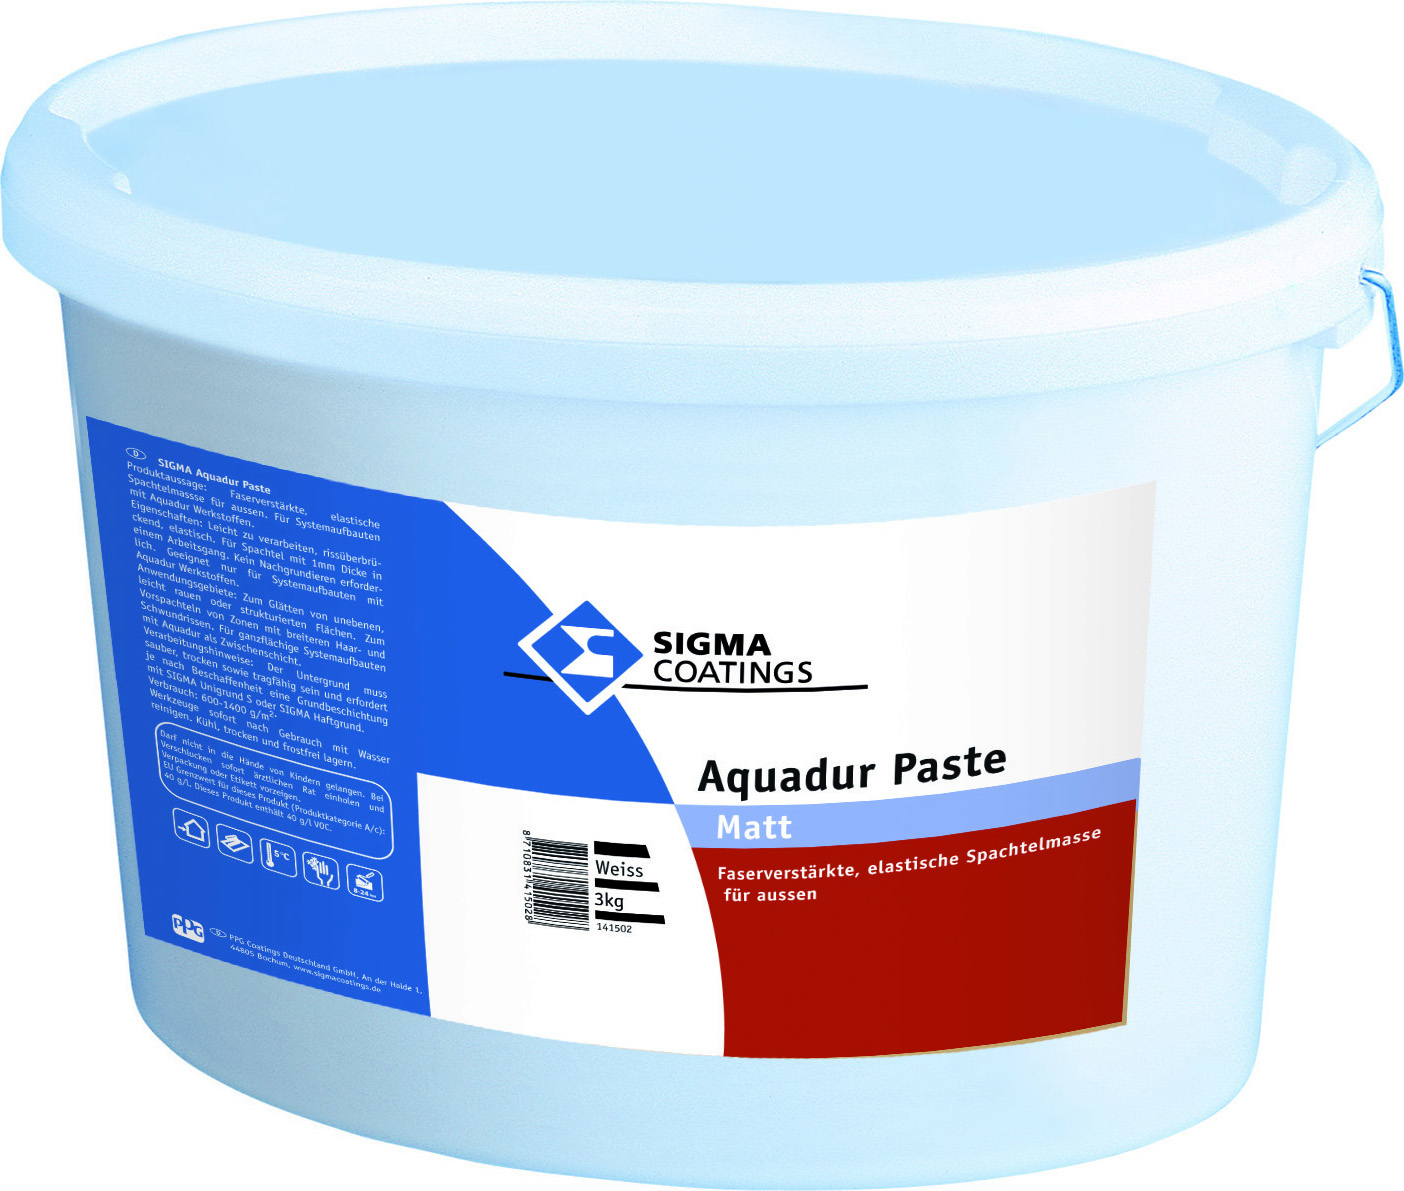 SIGMA Aquadur Paste